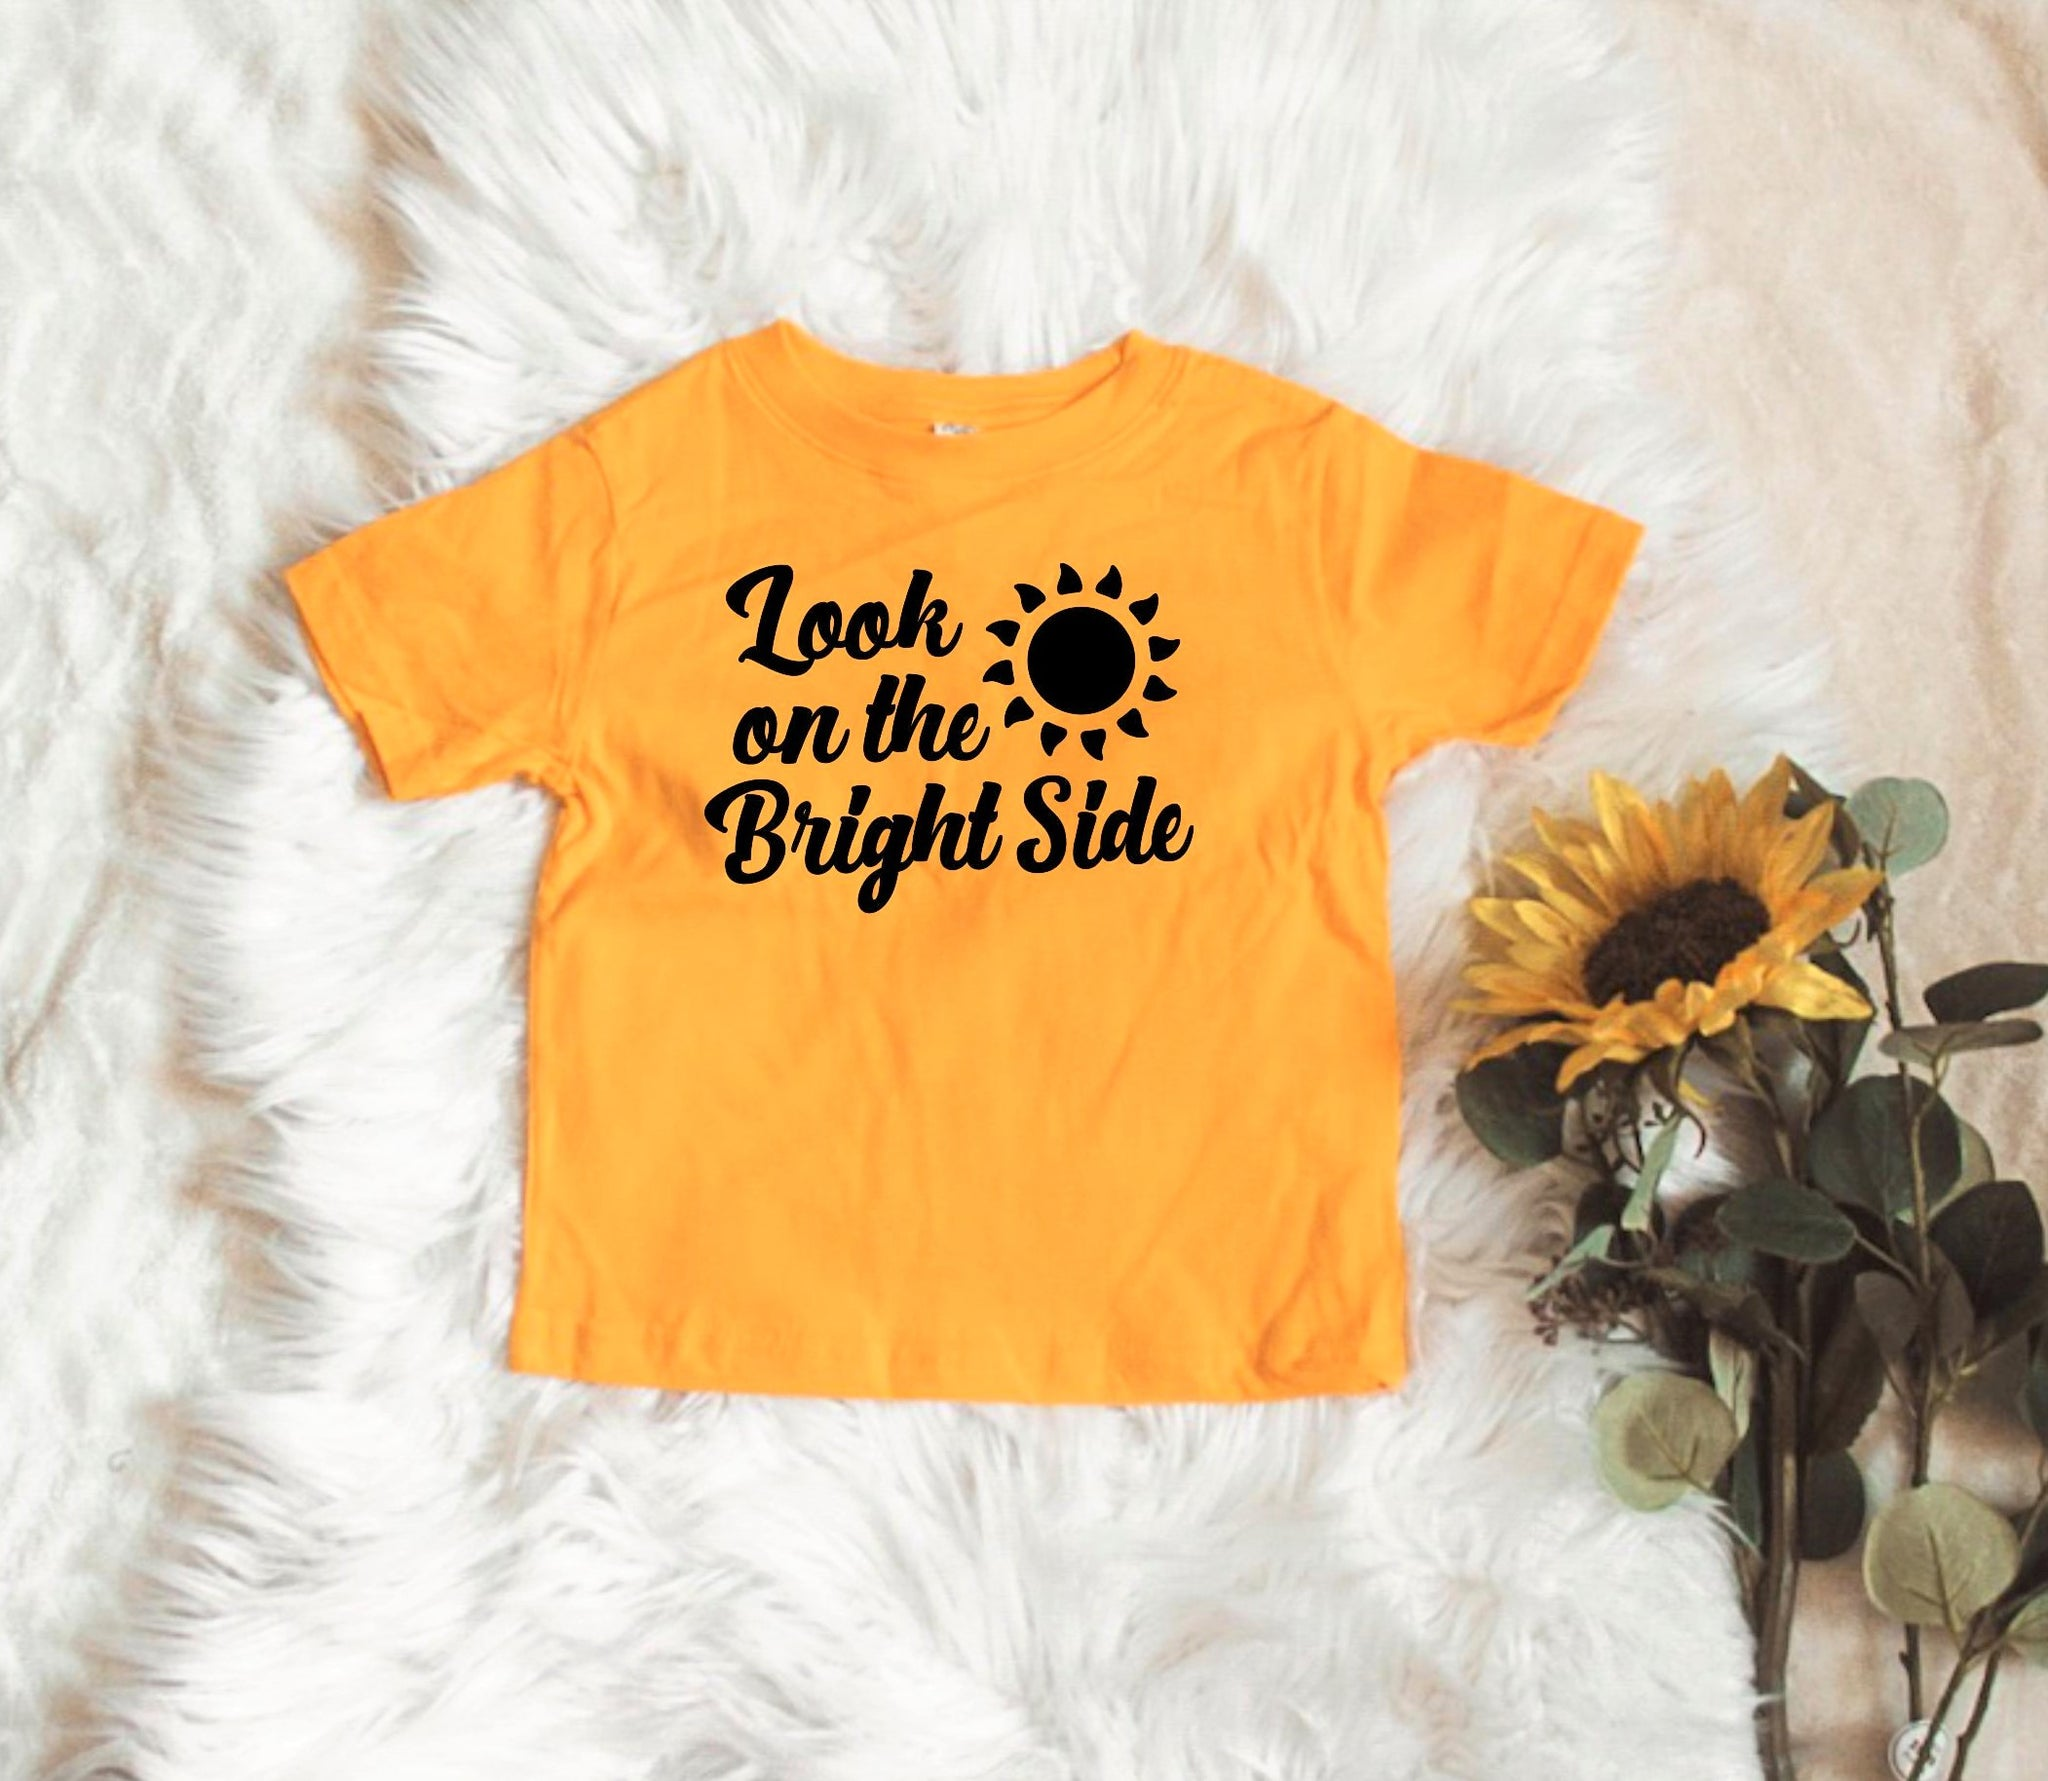 Look on the Bright Side - Toddler / Youth Tees - More Colors